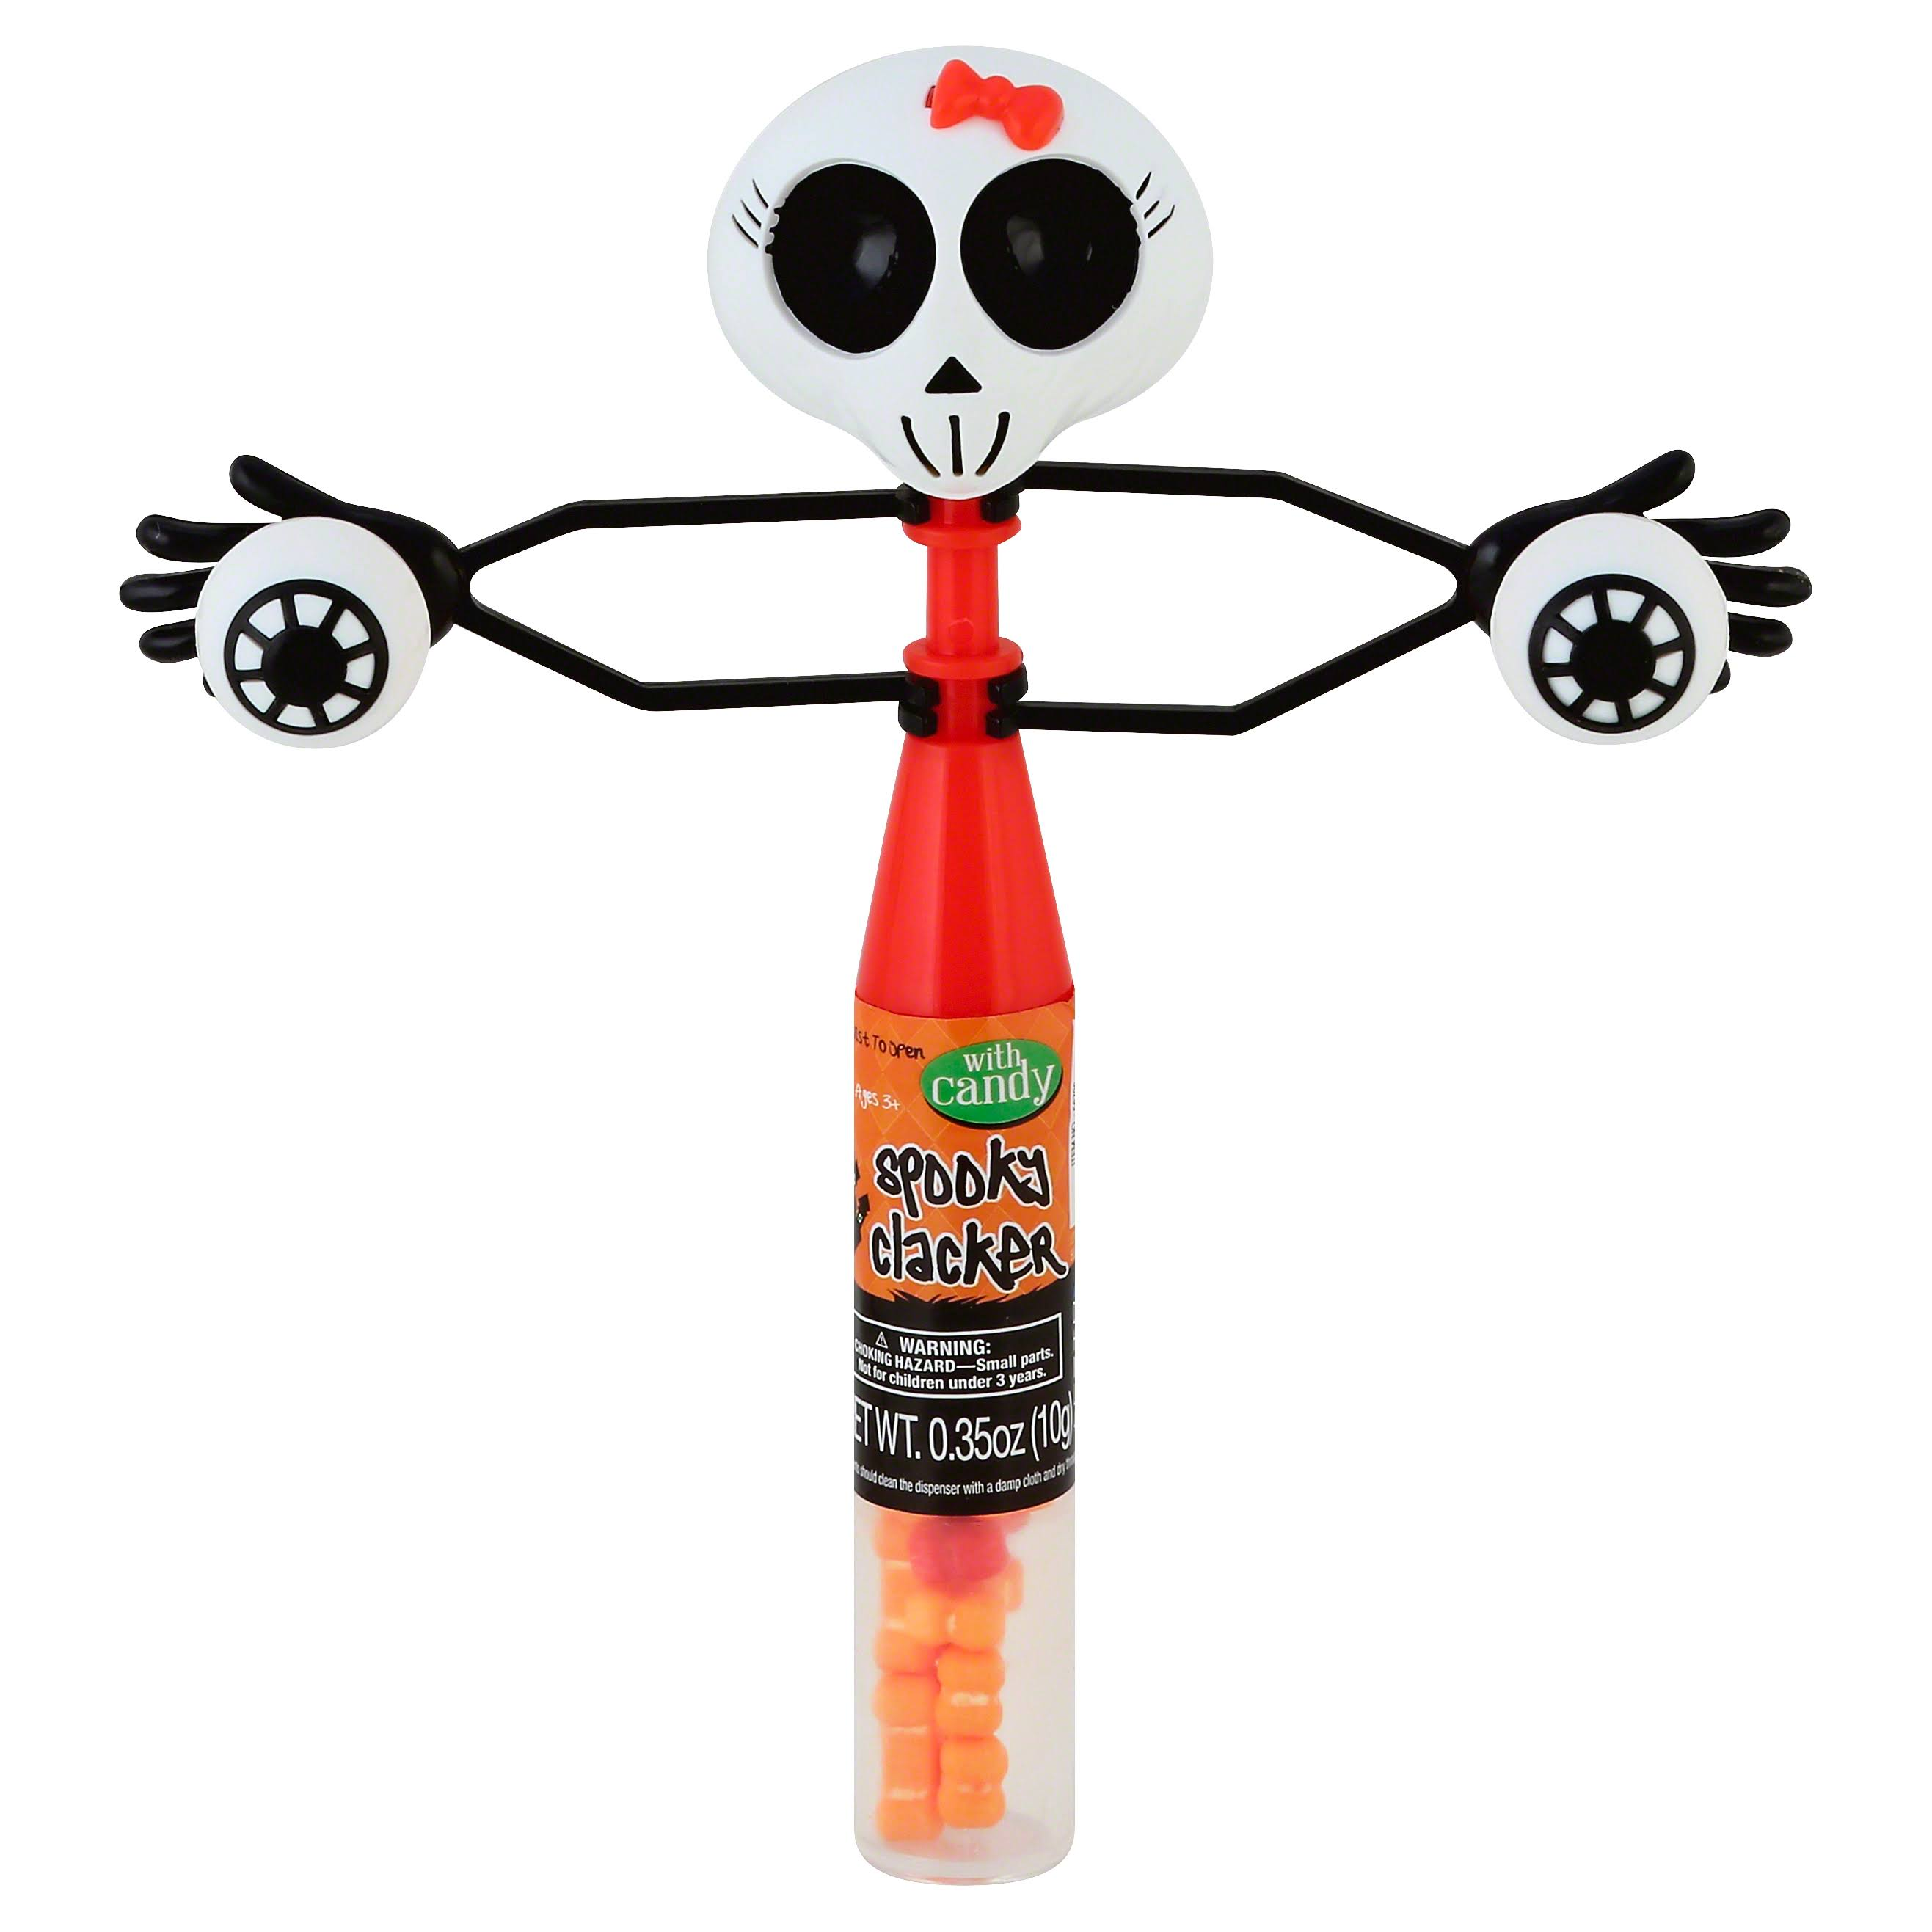 Hilco Spooky Clacker, with Candy - 0.35 oz